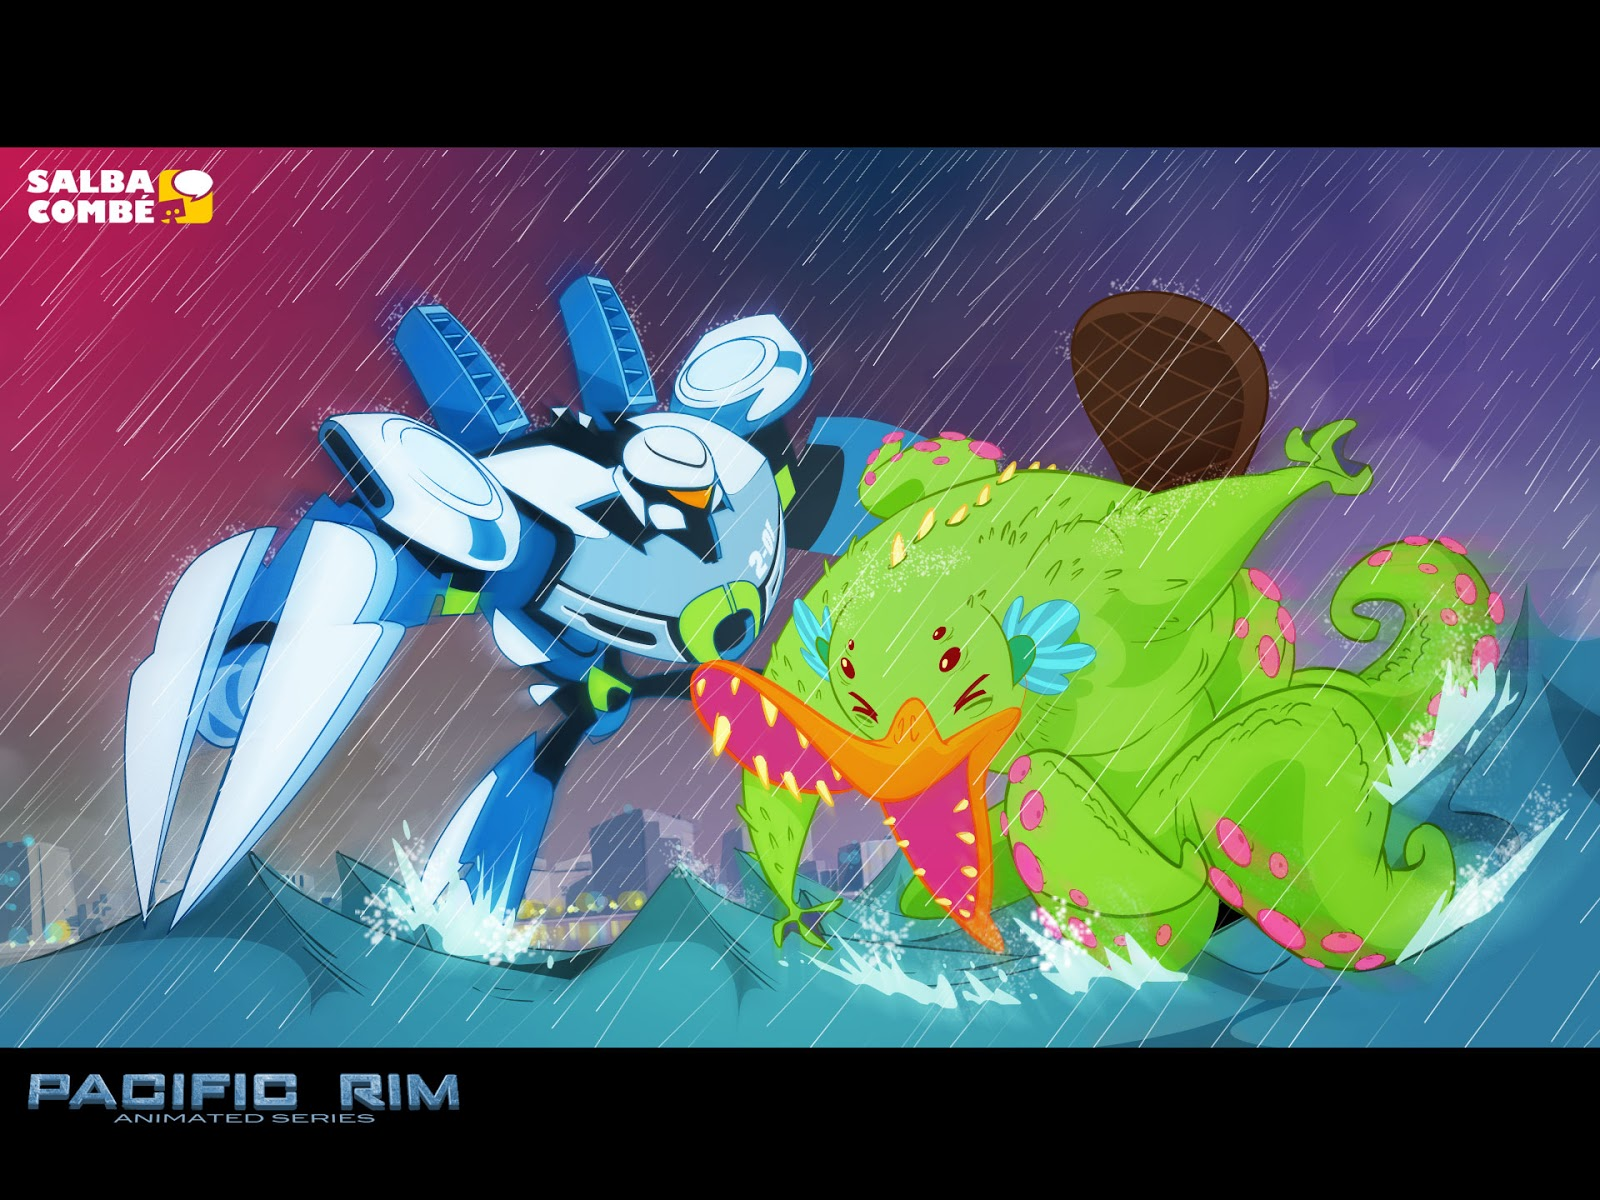 JAEGERS VS. KAIJU: PACIFIC RIM - THE ANIMATED SERIES Pacific Rim